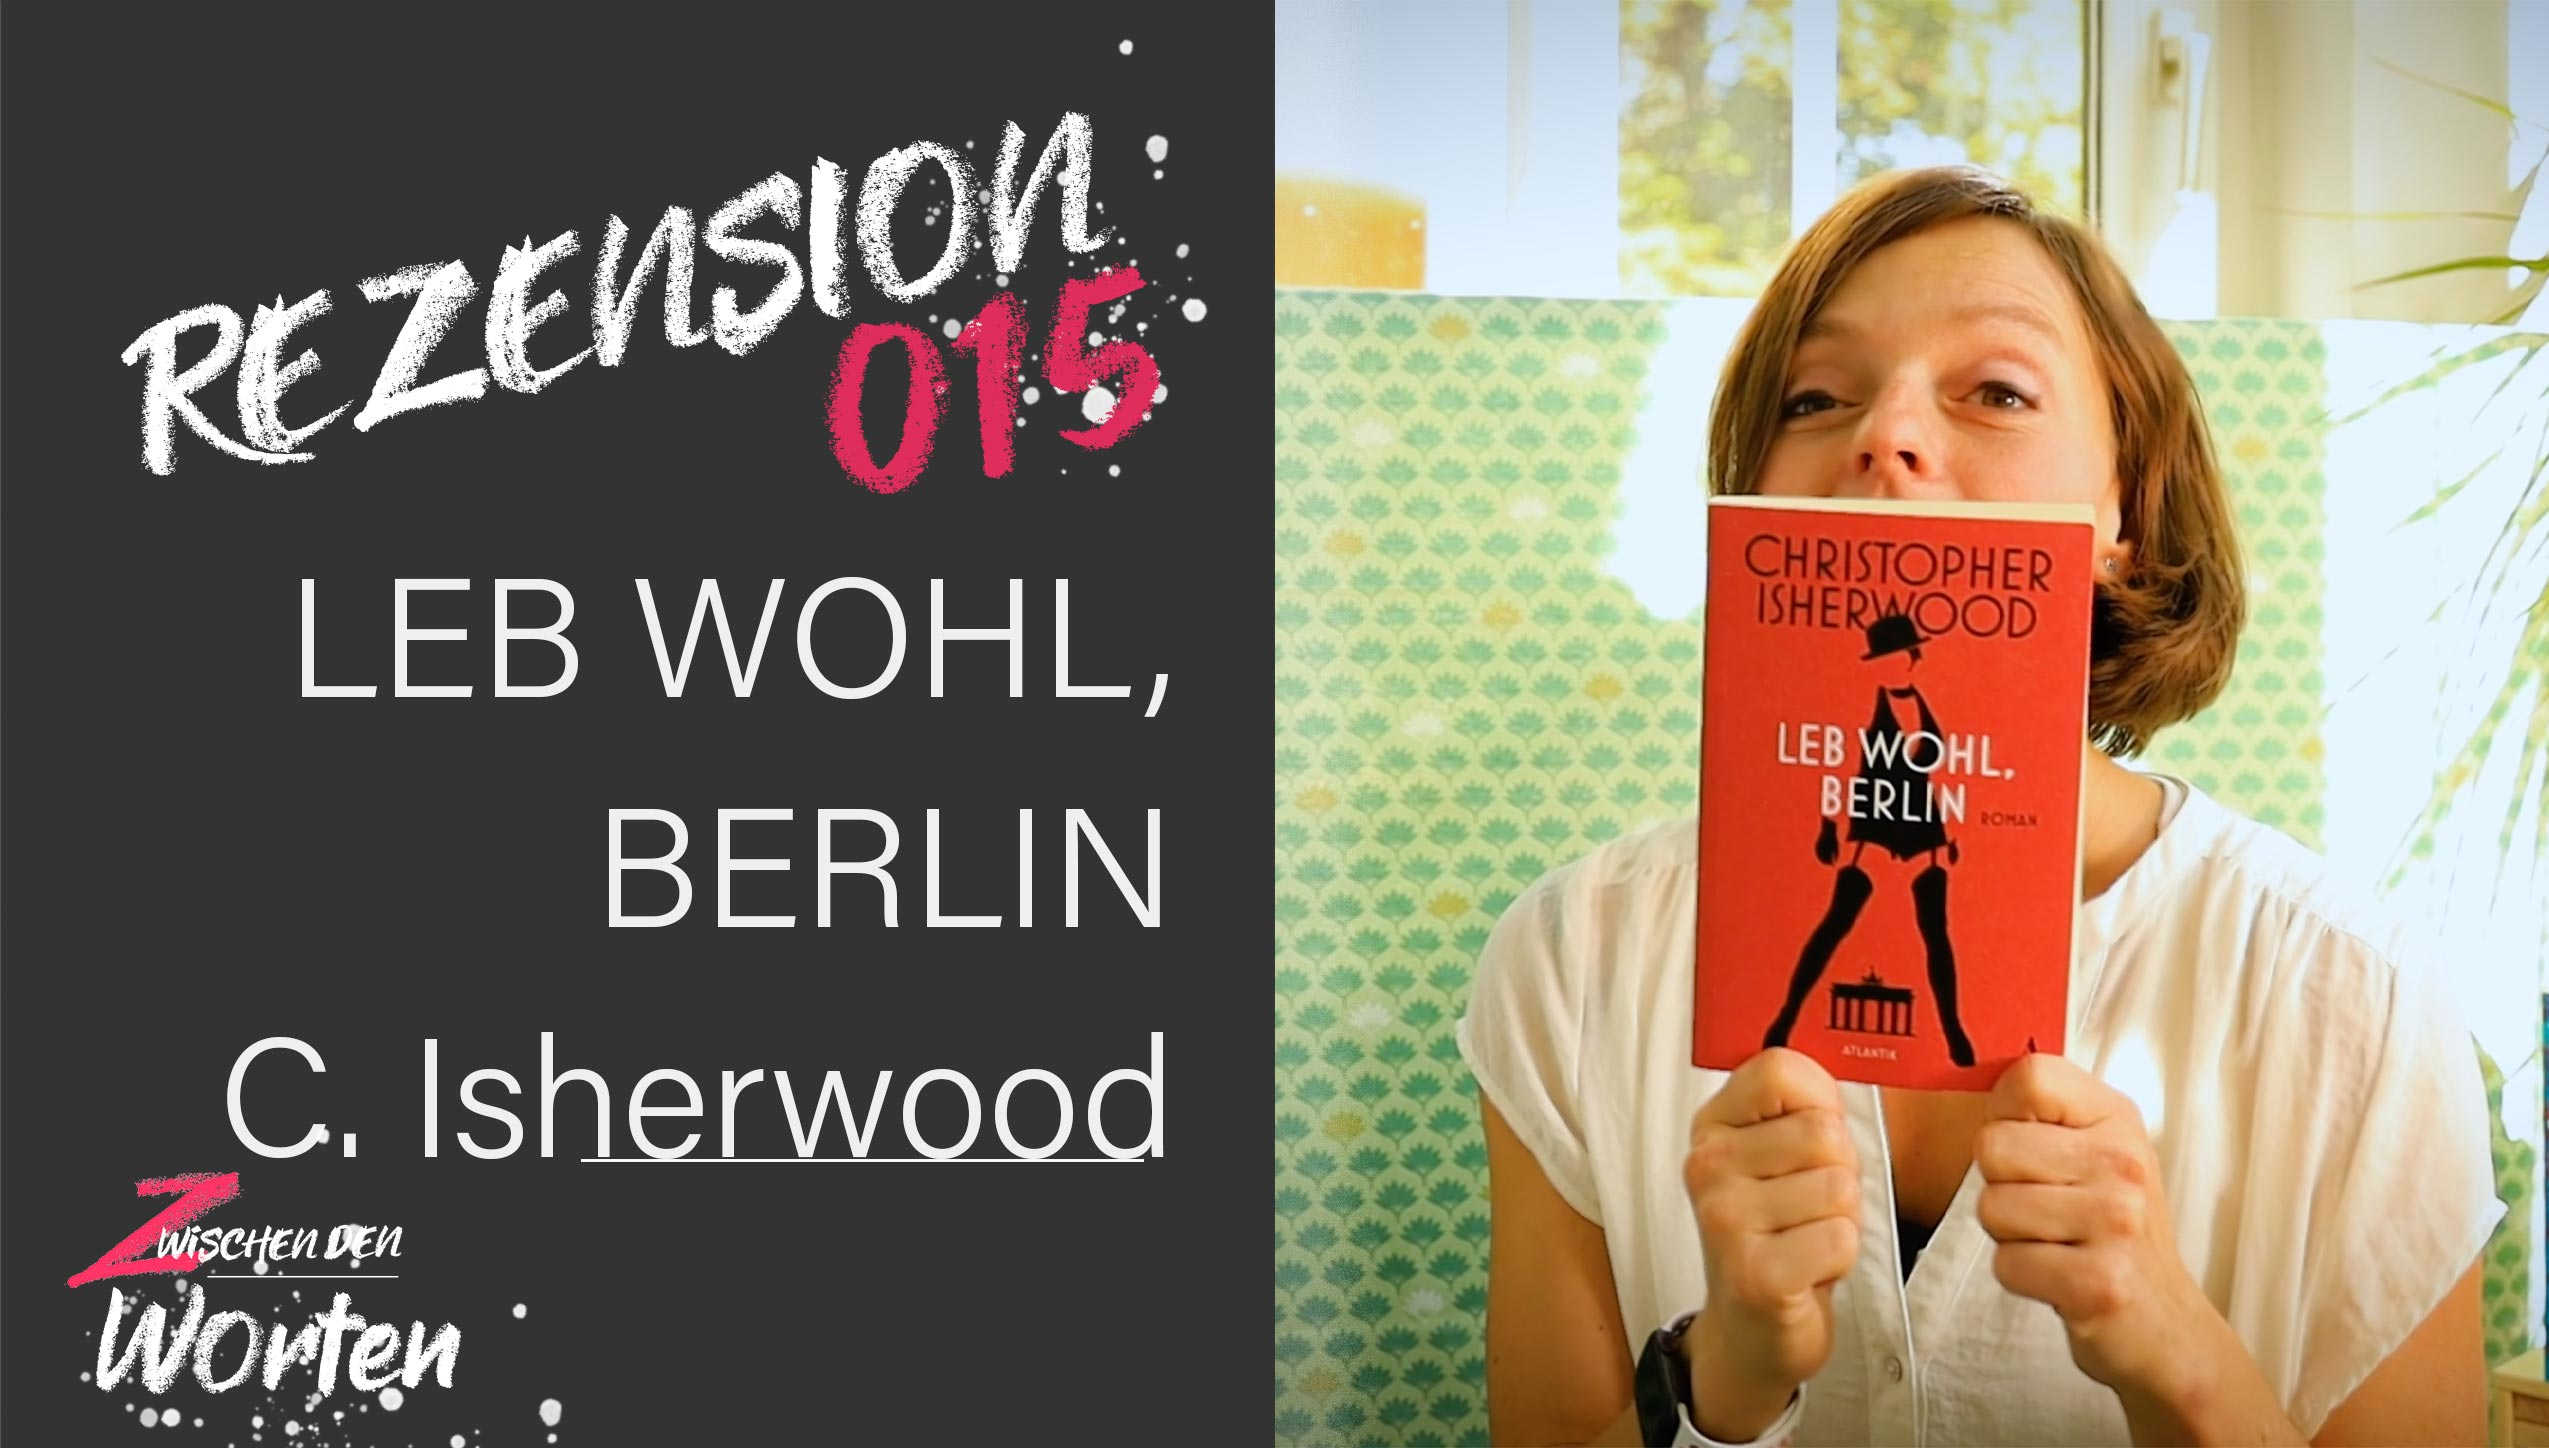 REZI-15_Christopher-Isherwood_Leb-wohl-Berlin